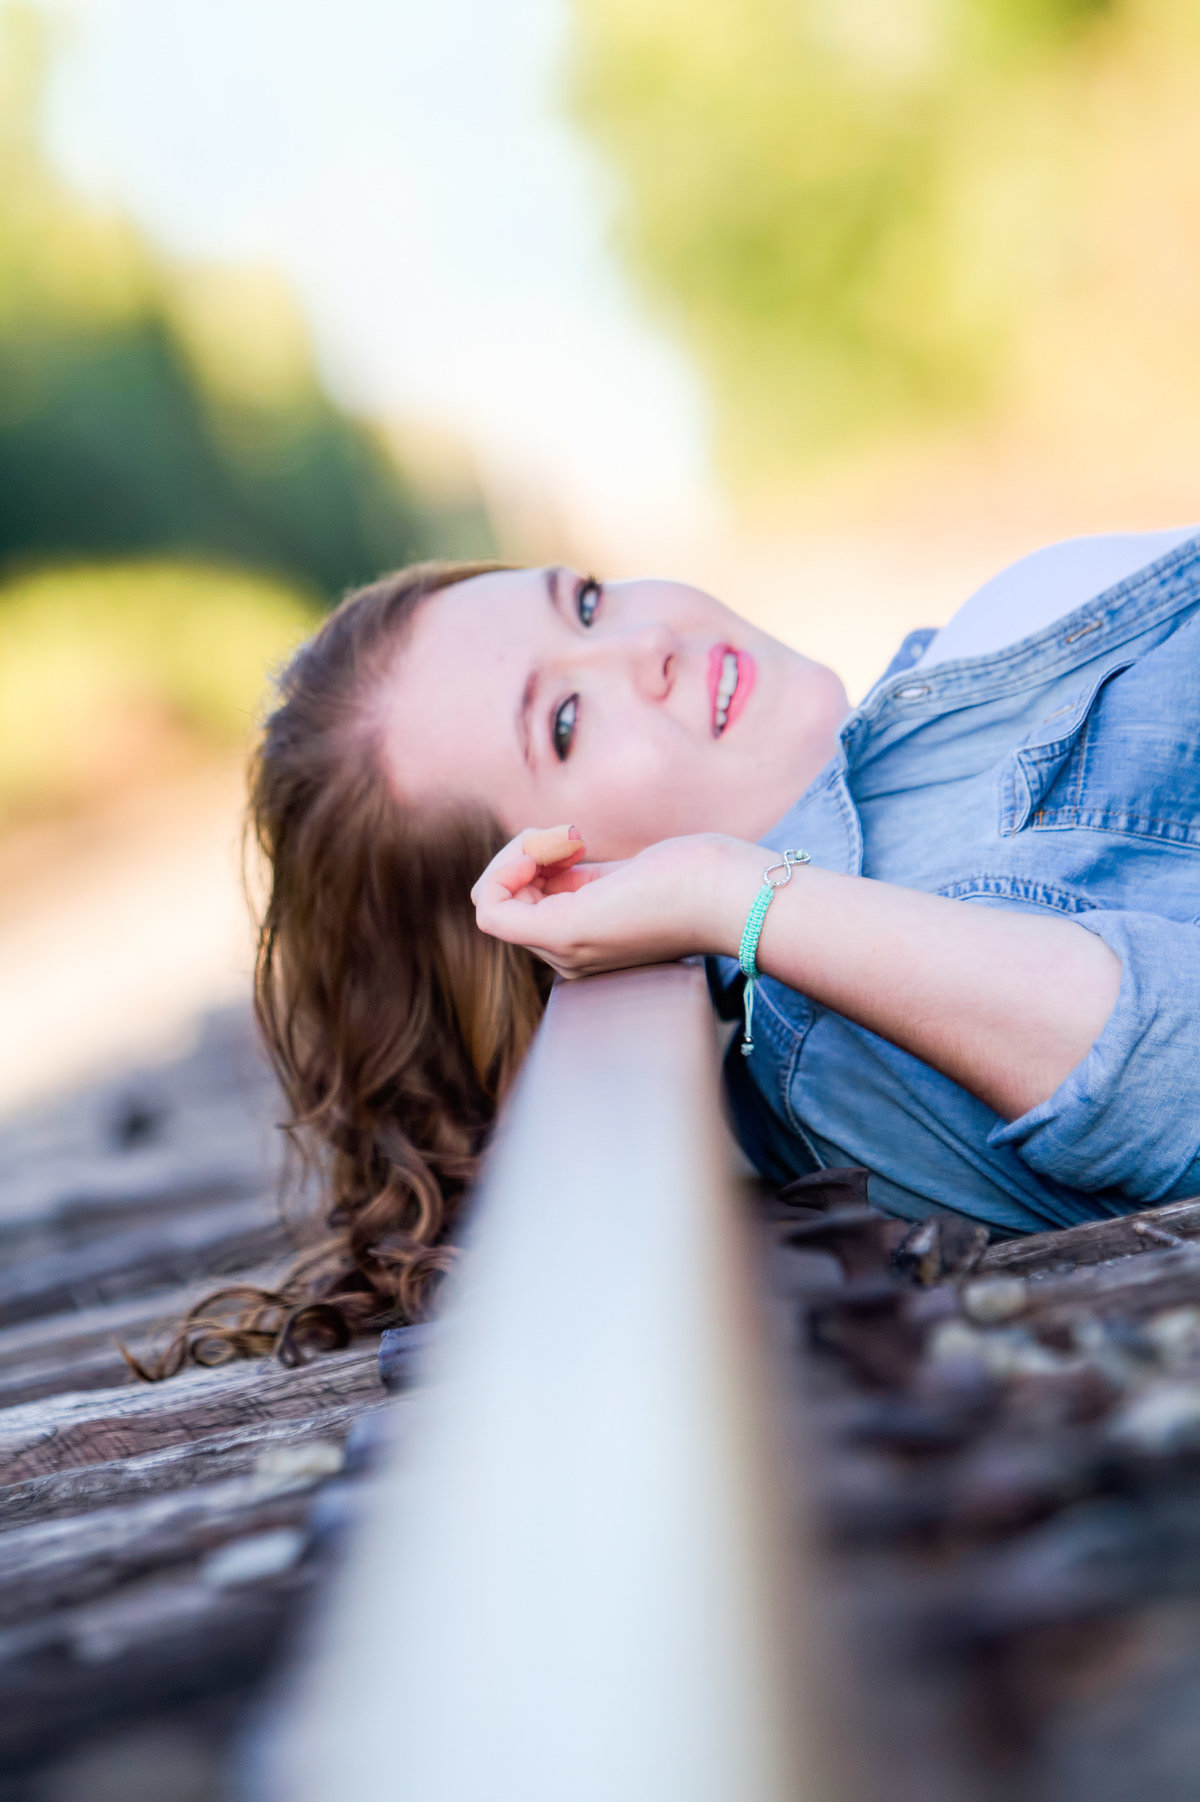 Girl Senior portrait on railroad track